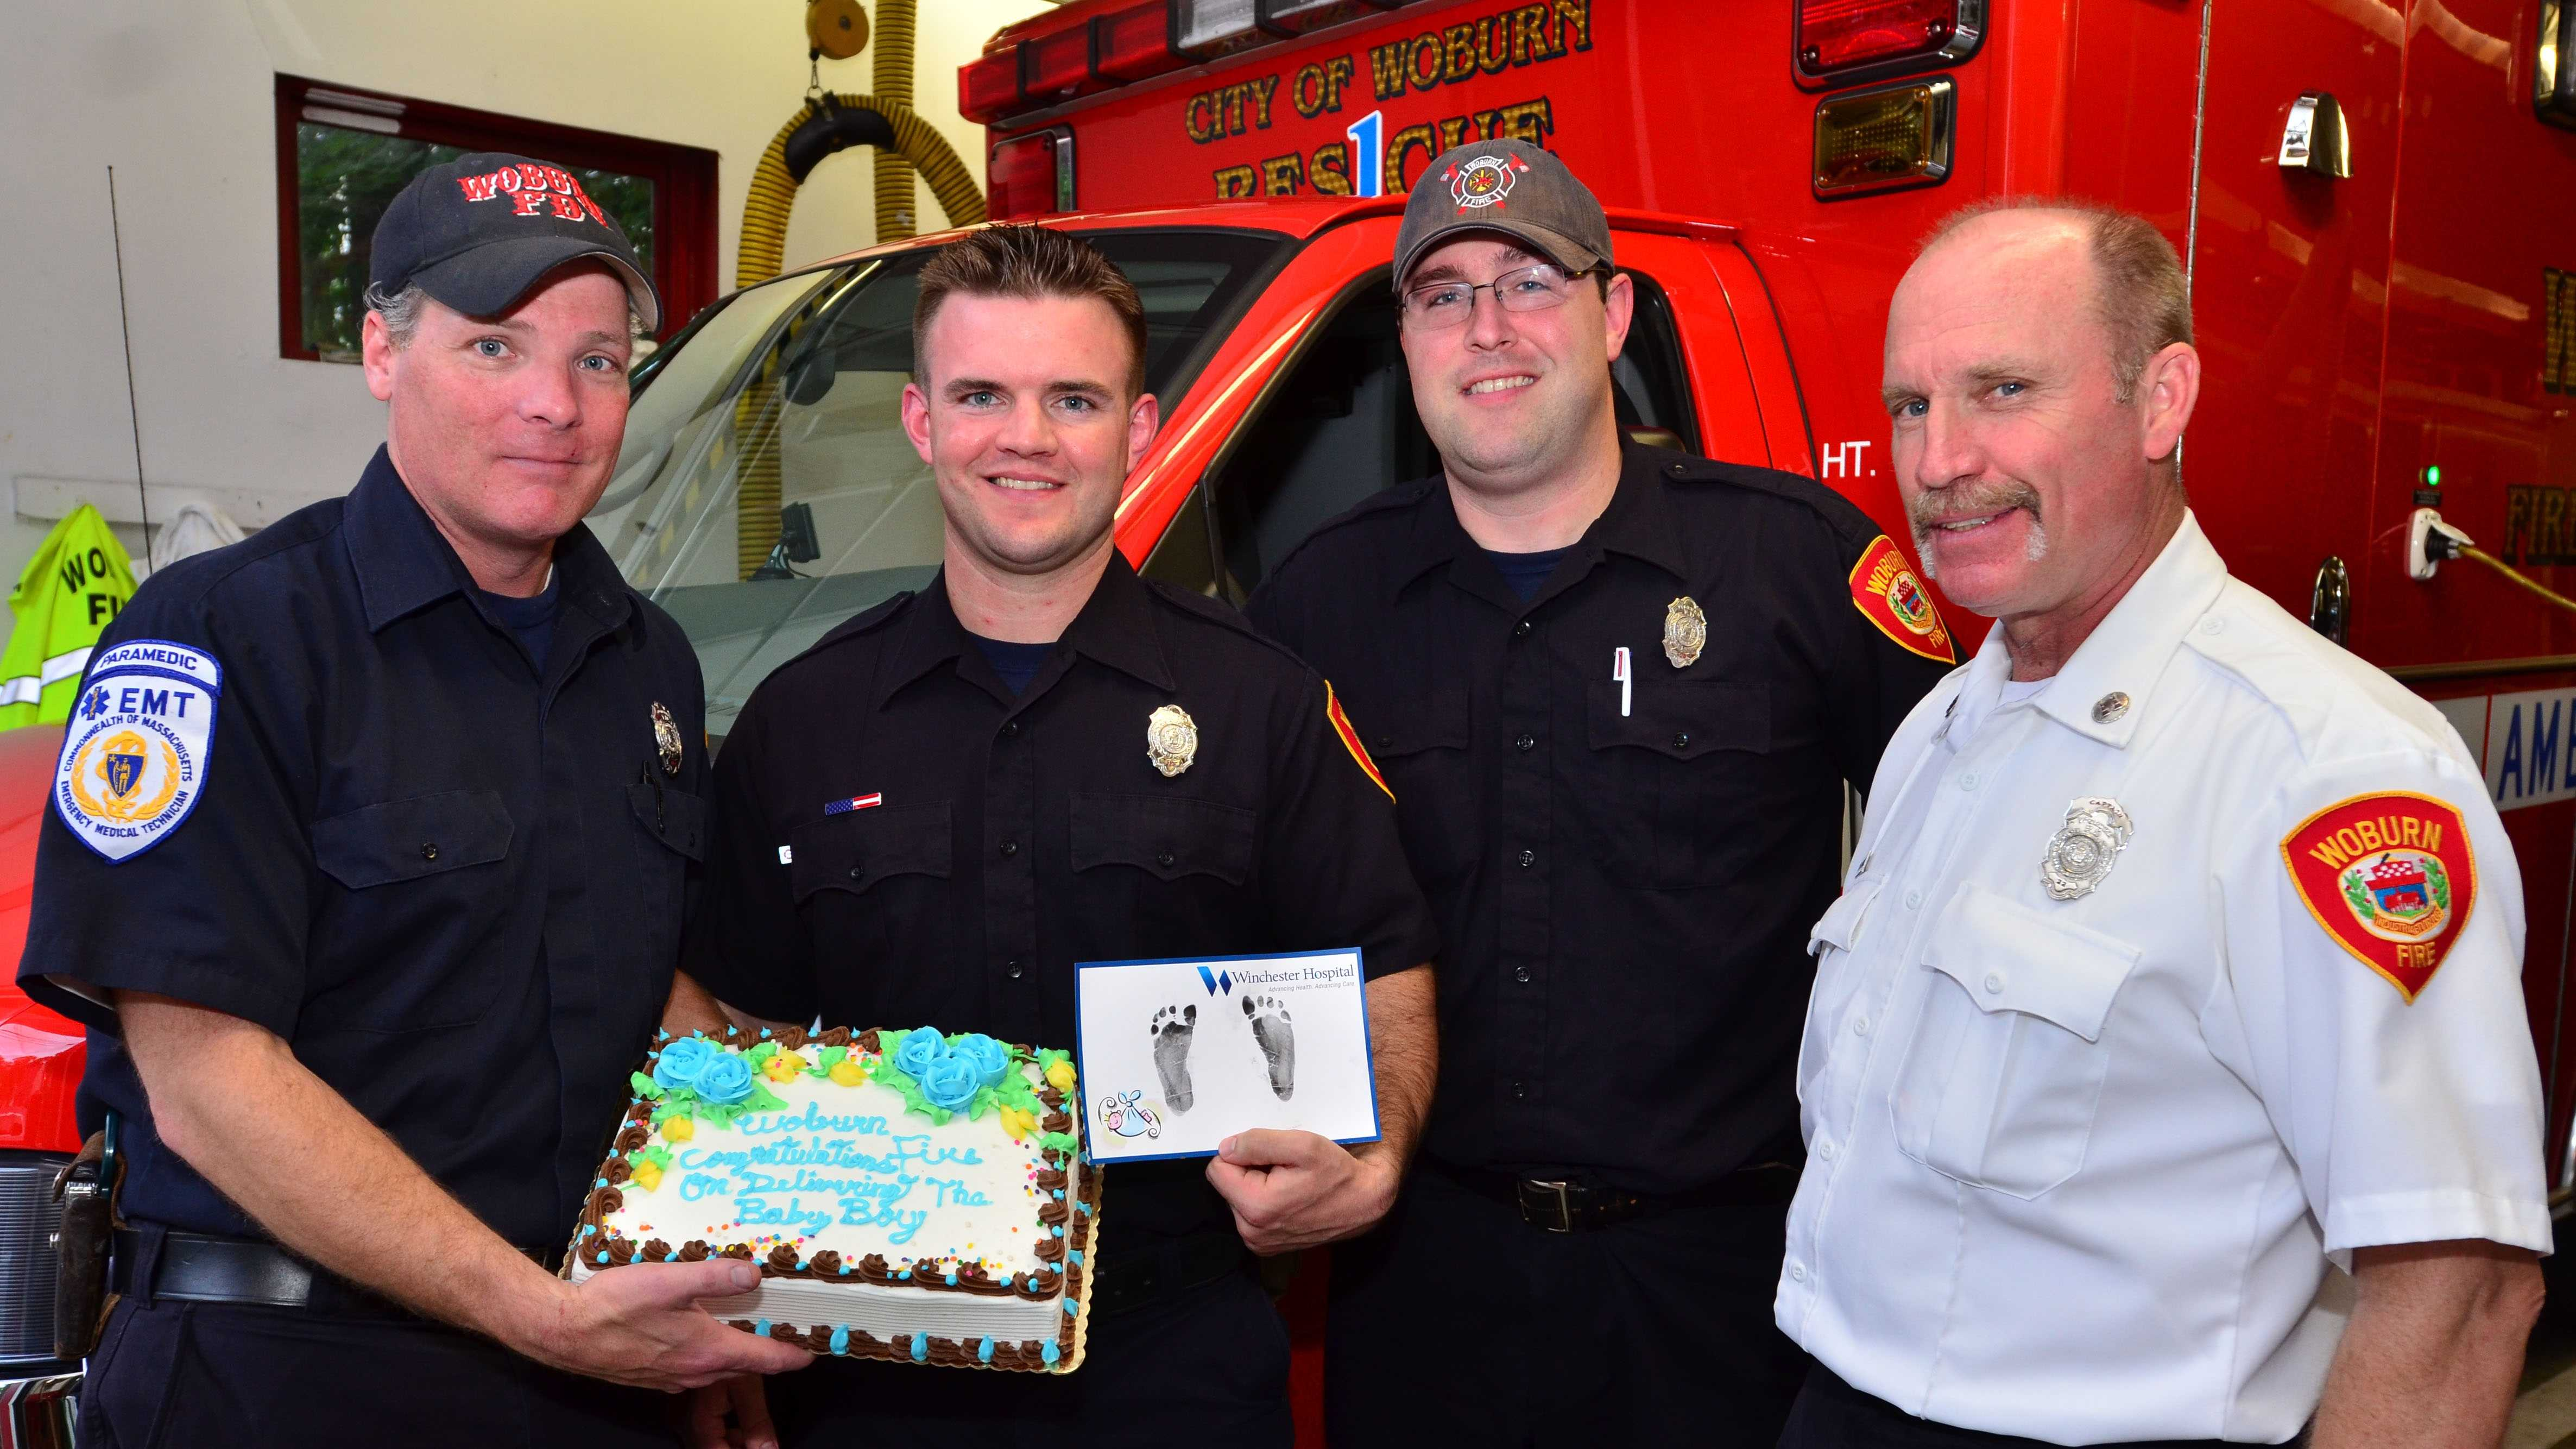 Woburn firefighters assist in delivery of newborn